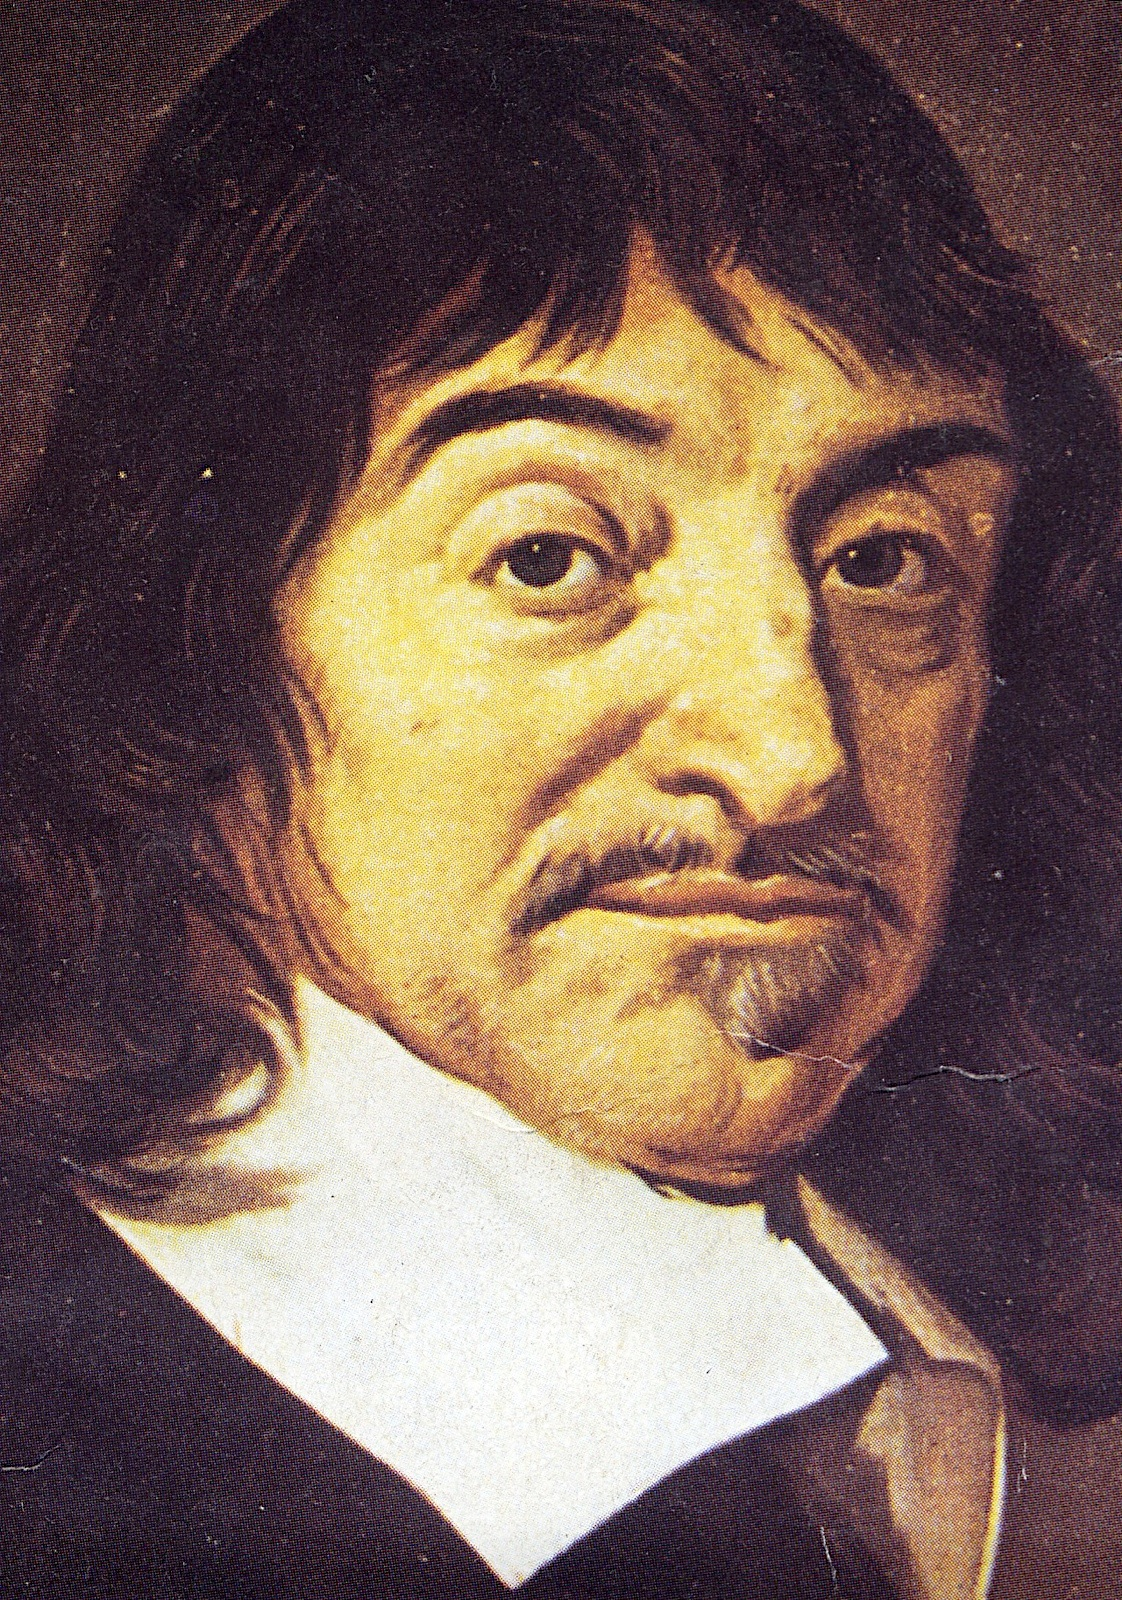 rene descartes René descartes: rene descartes, french mathematician, scientist, and  philosopher who has been called the father of modern philosophy.